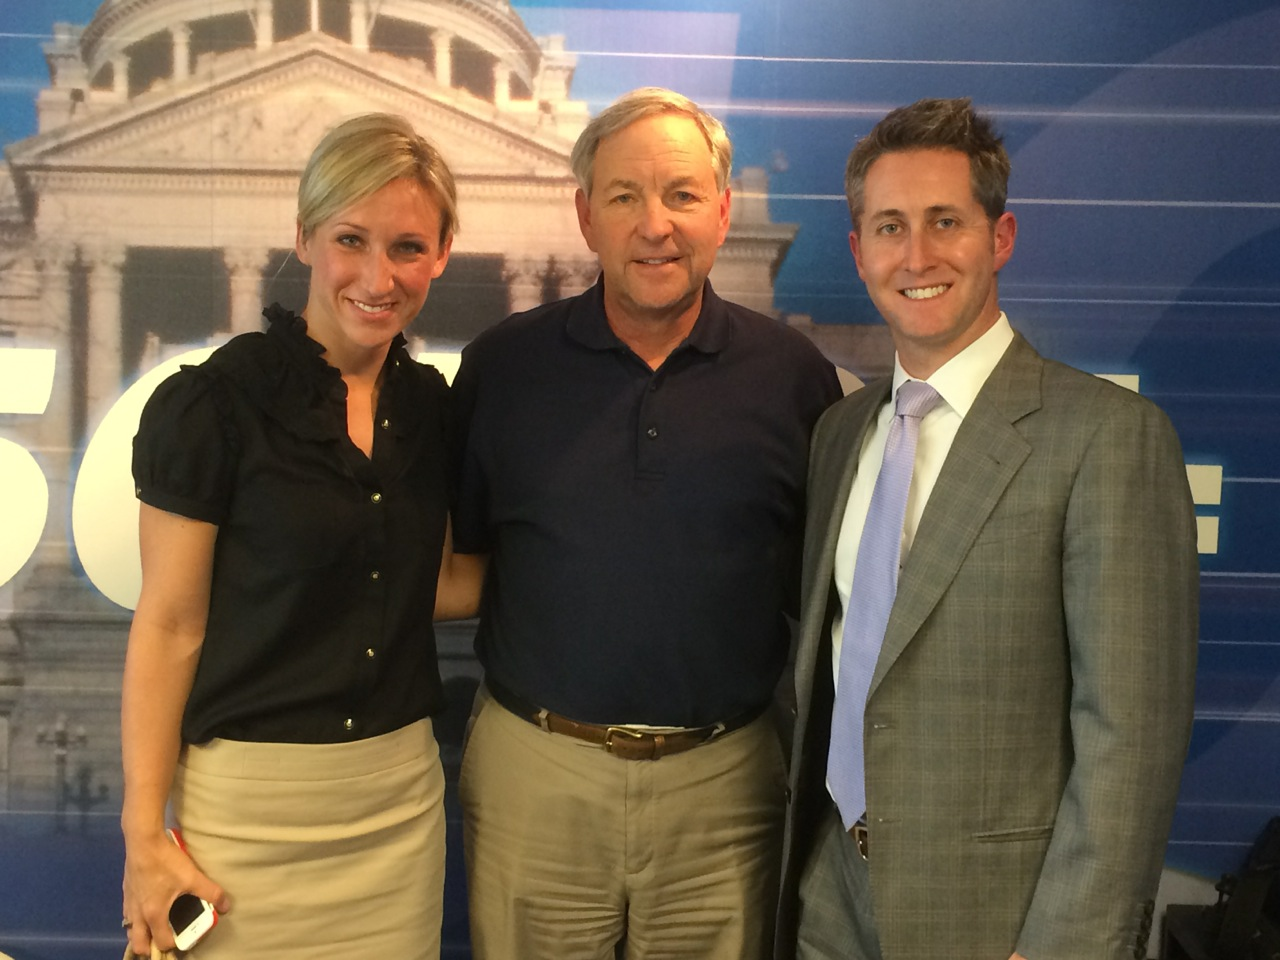 Doug Richards with 850 KOA's Mike Rosen and fellow attorney Lindsay Hutchinson.